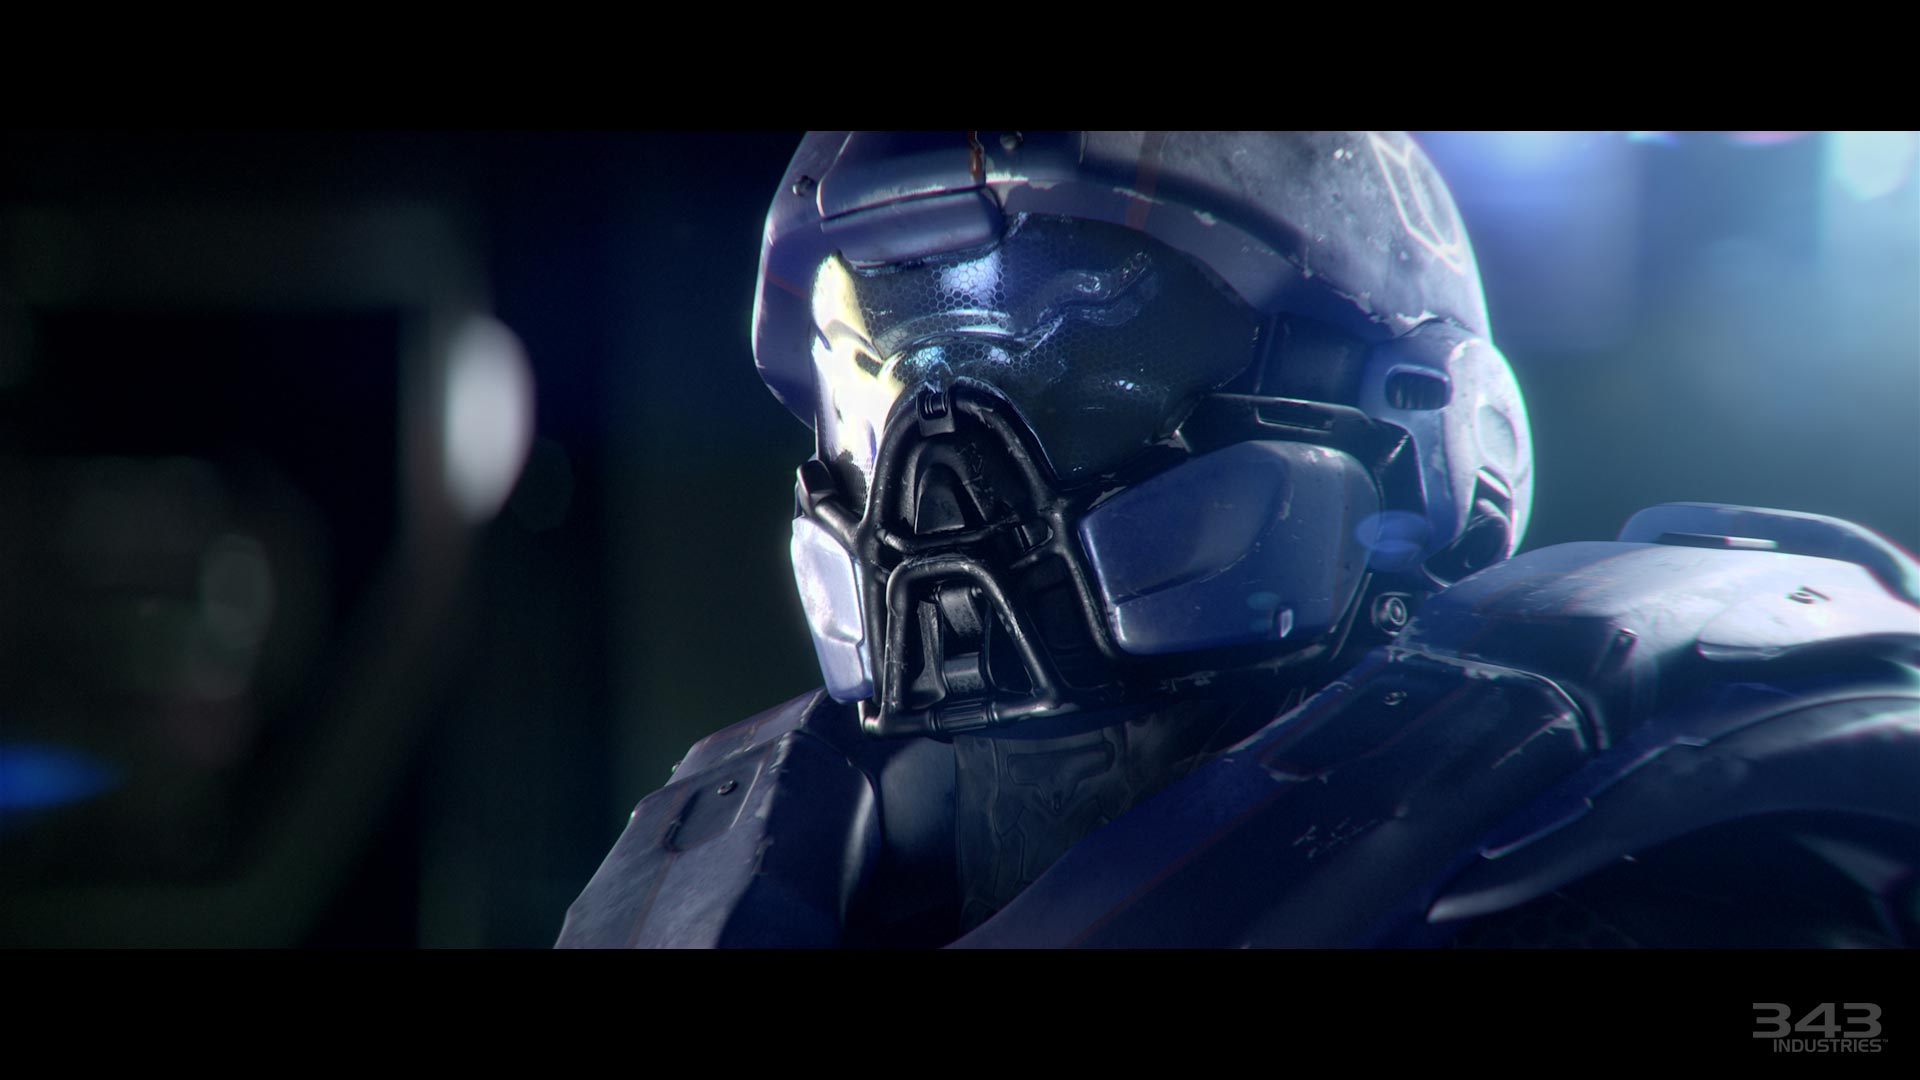 Halo 5 pictures 1920x1080